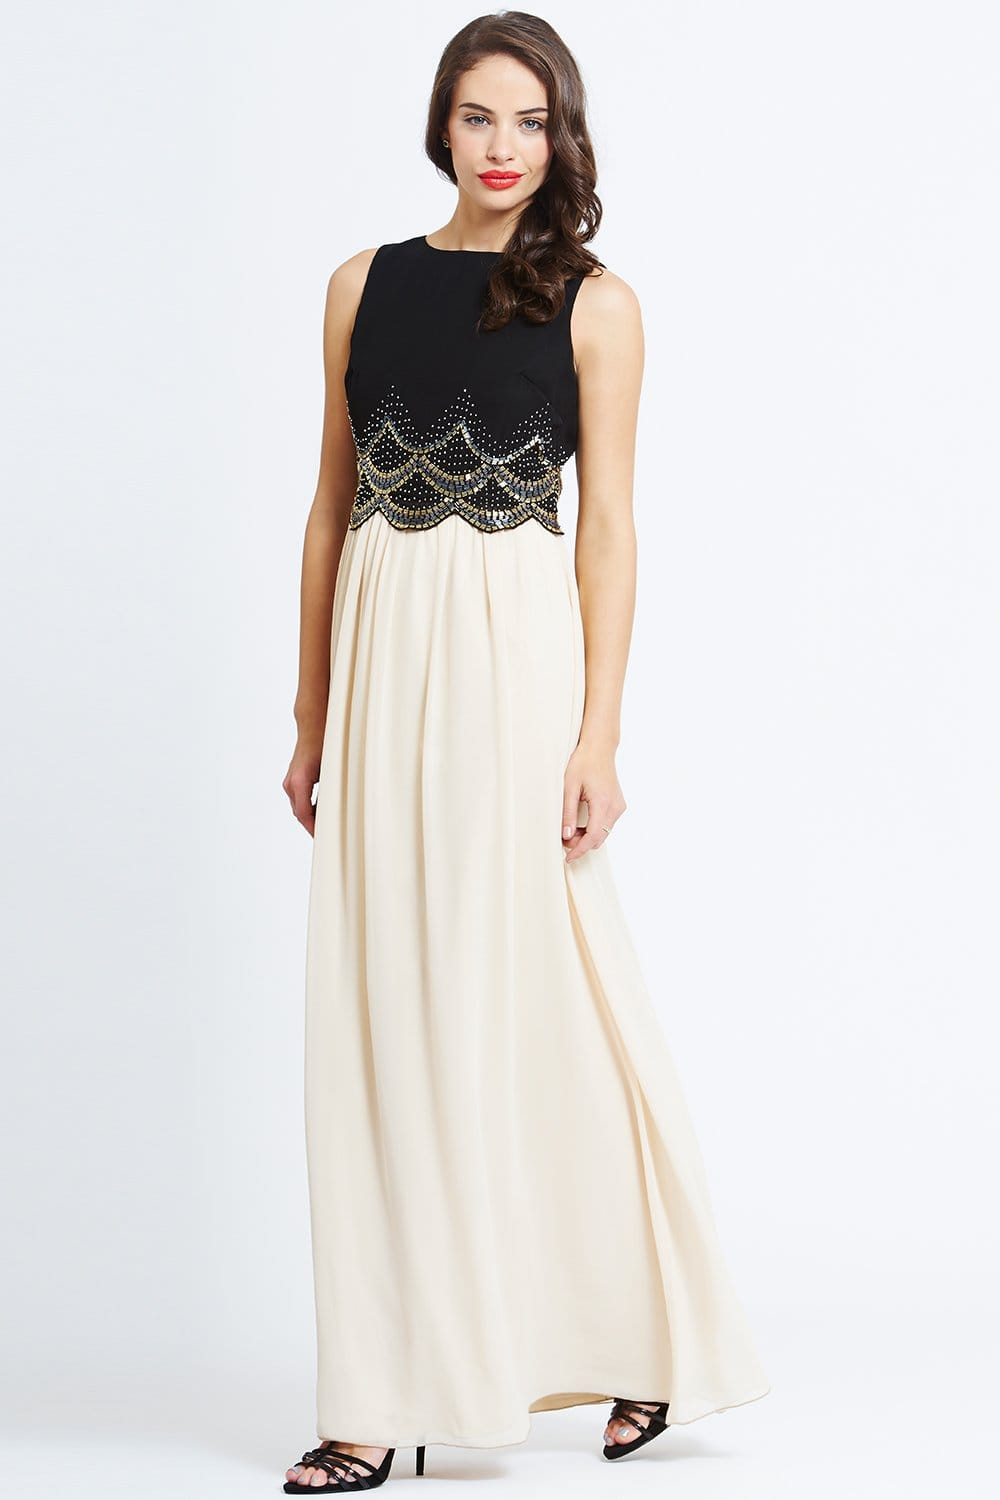 Dresses. QUIZ has you sorted with an incredible collection of dresses for FW18 to help you start the new season. Featuring all of the hottest styles for , including beautiful pastel and printed styles on top of knock out maxis and elegant midis, we have all of the fall- and winter-ready dresses you need.